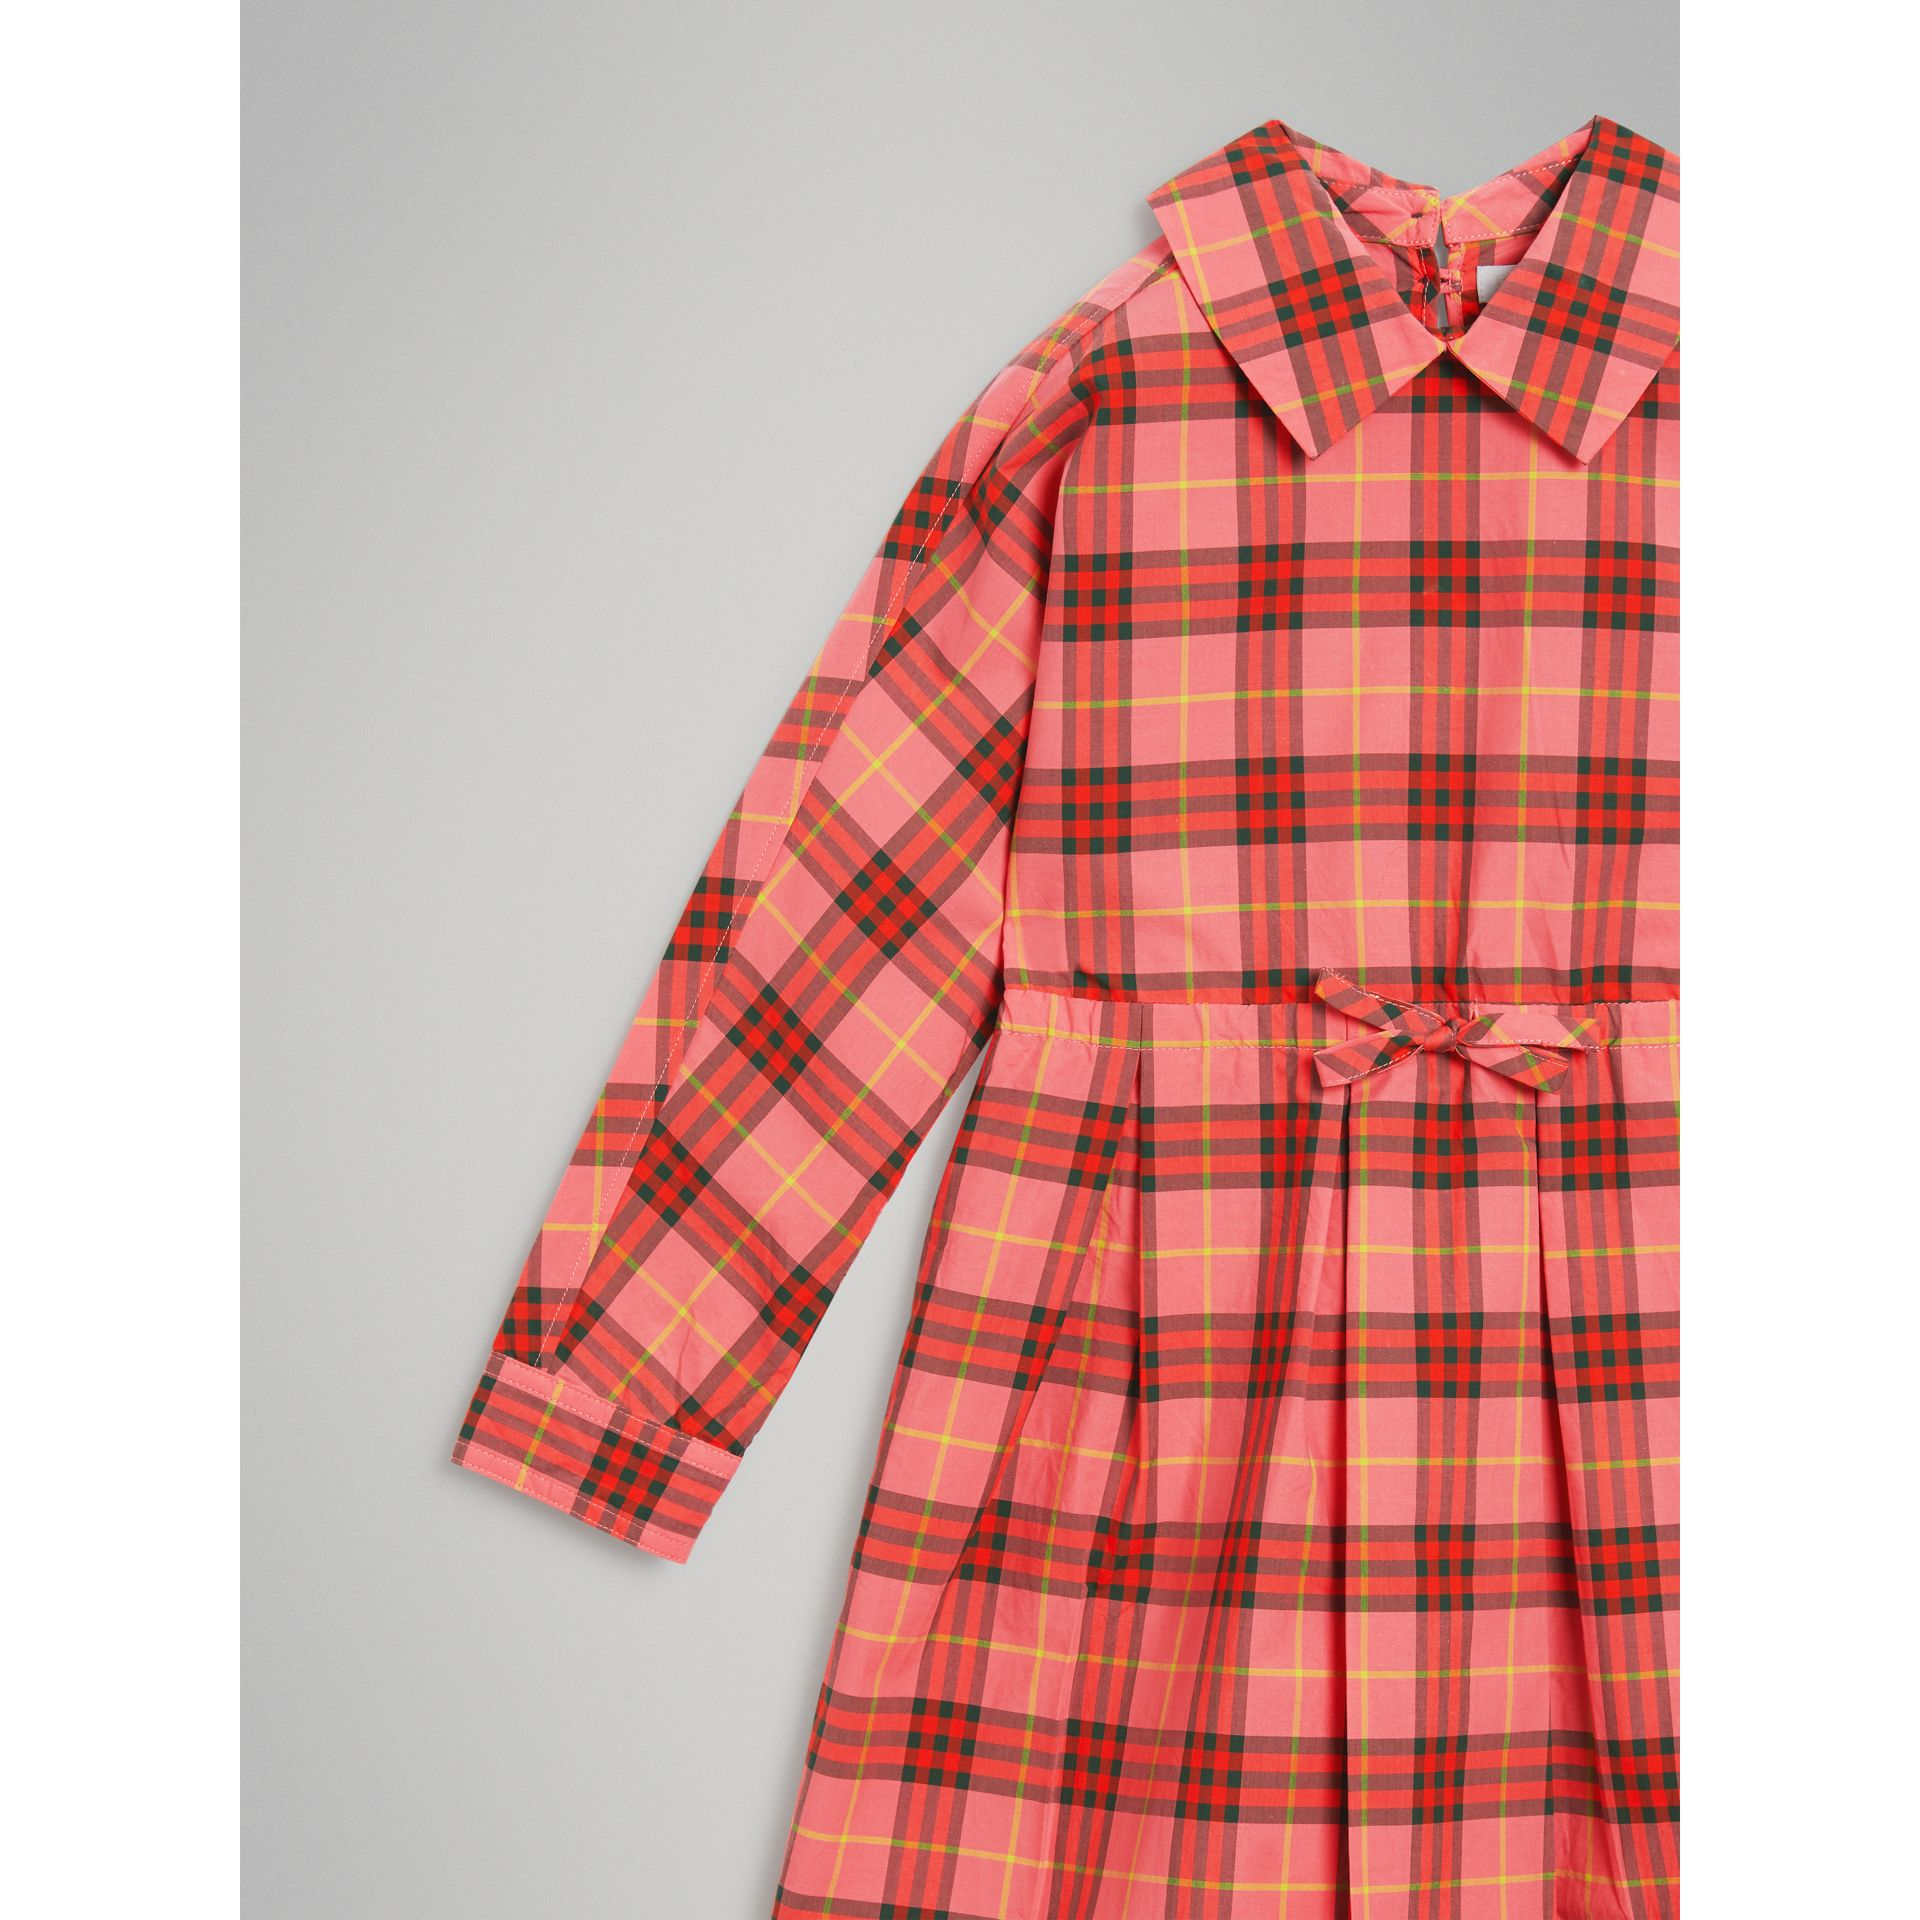 Robe à cordon de serrage en coton à motif check (Rouge Corail) - Fille | Burberry - photo de la galerie 4